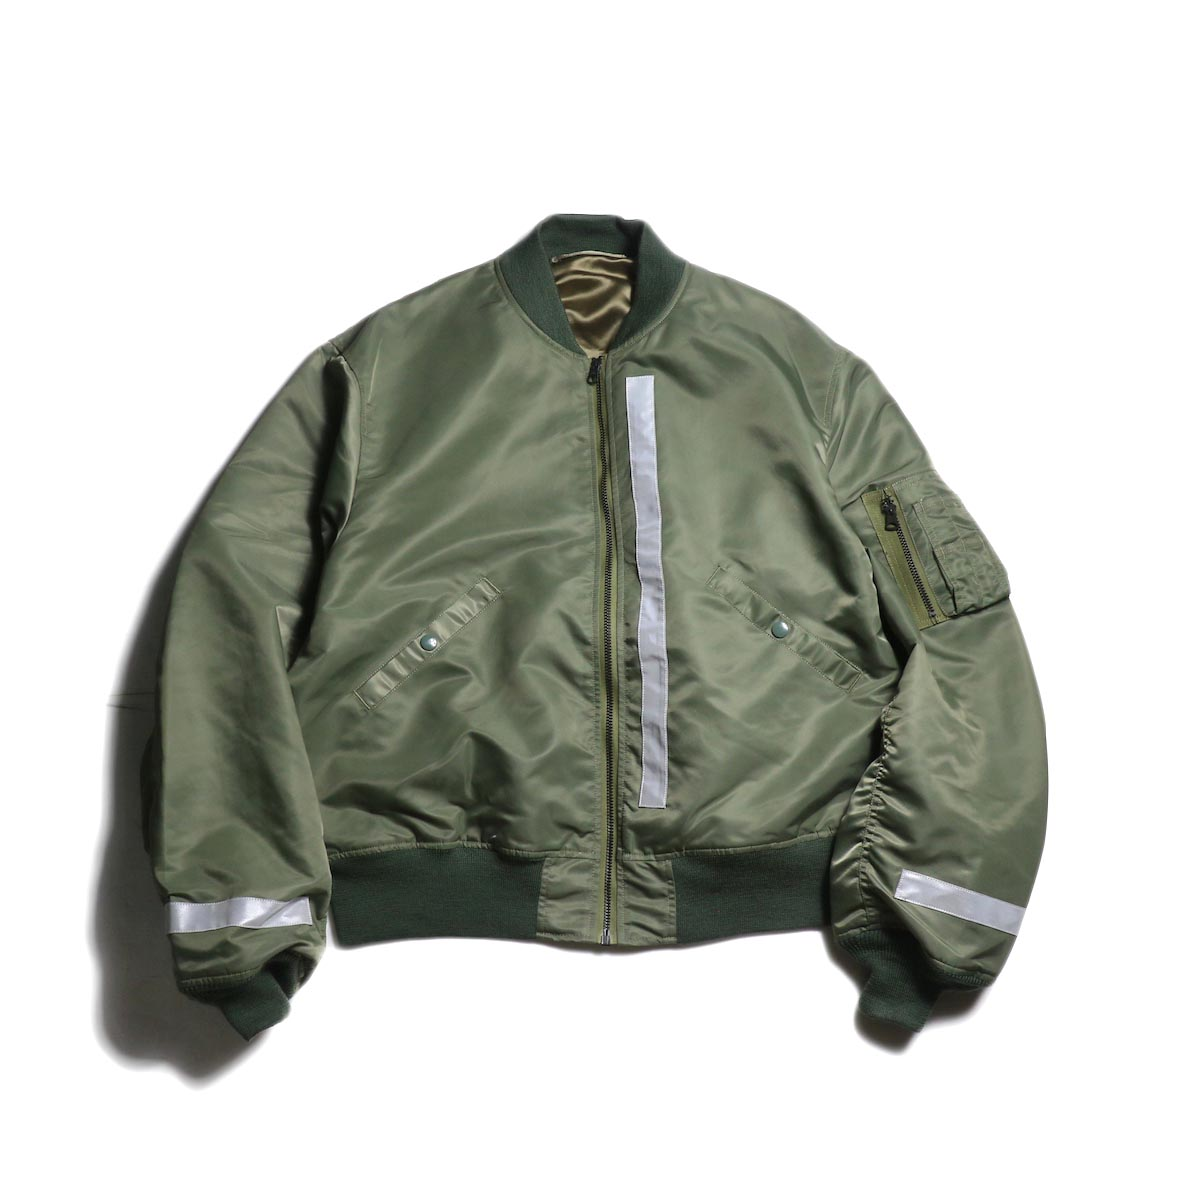 UNUSED × Buzz Rickson's / US1640 Reversible Flight Jacket (Sage Green)